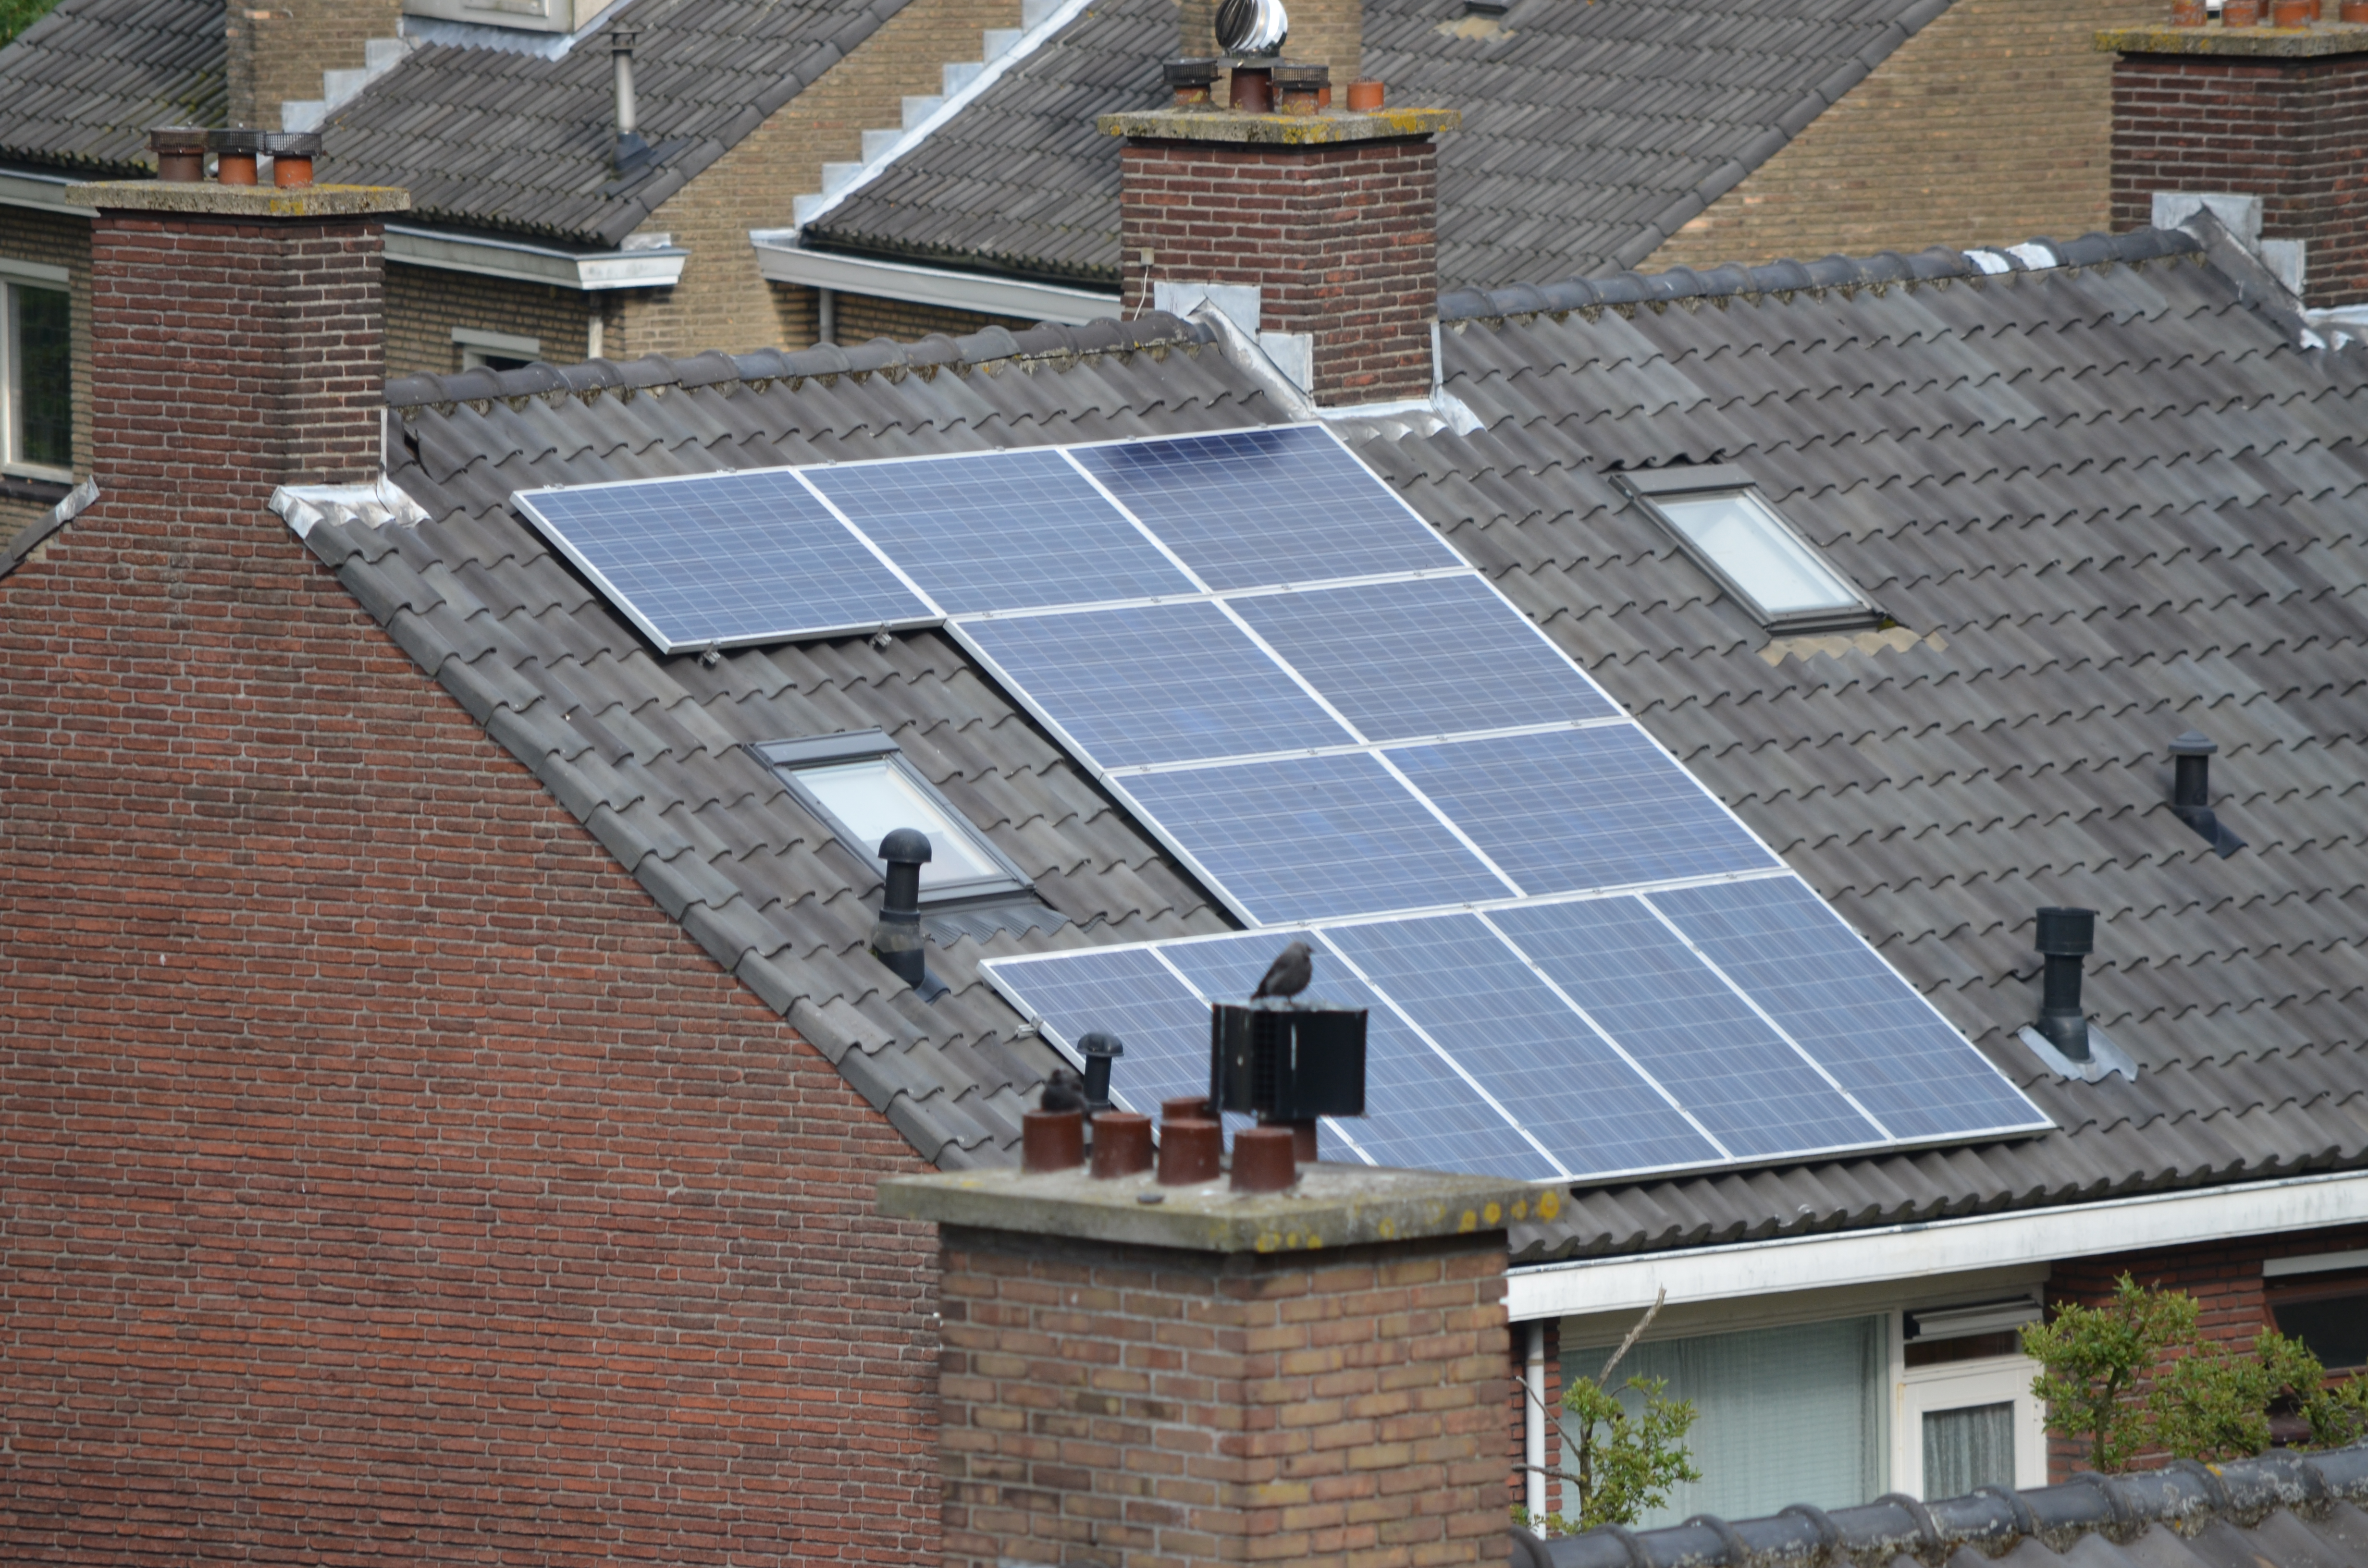 Solar_panel_on_a_roof_The_Netherlands_2